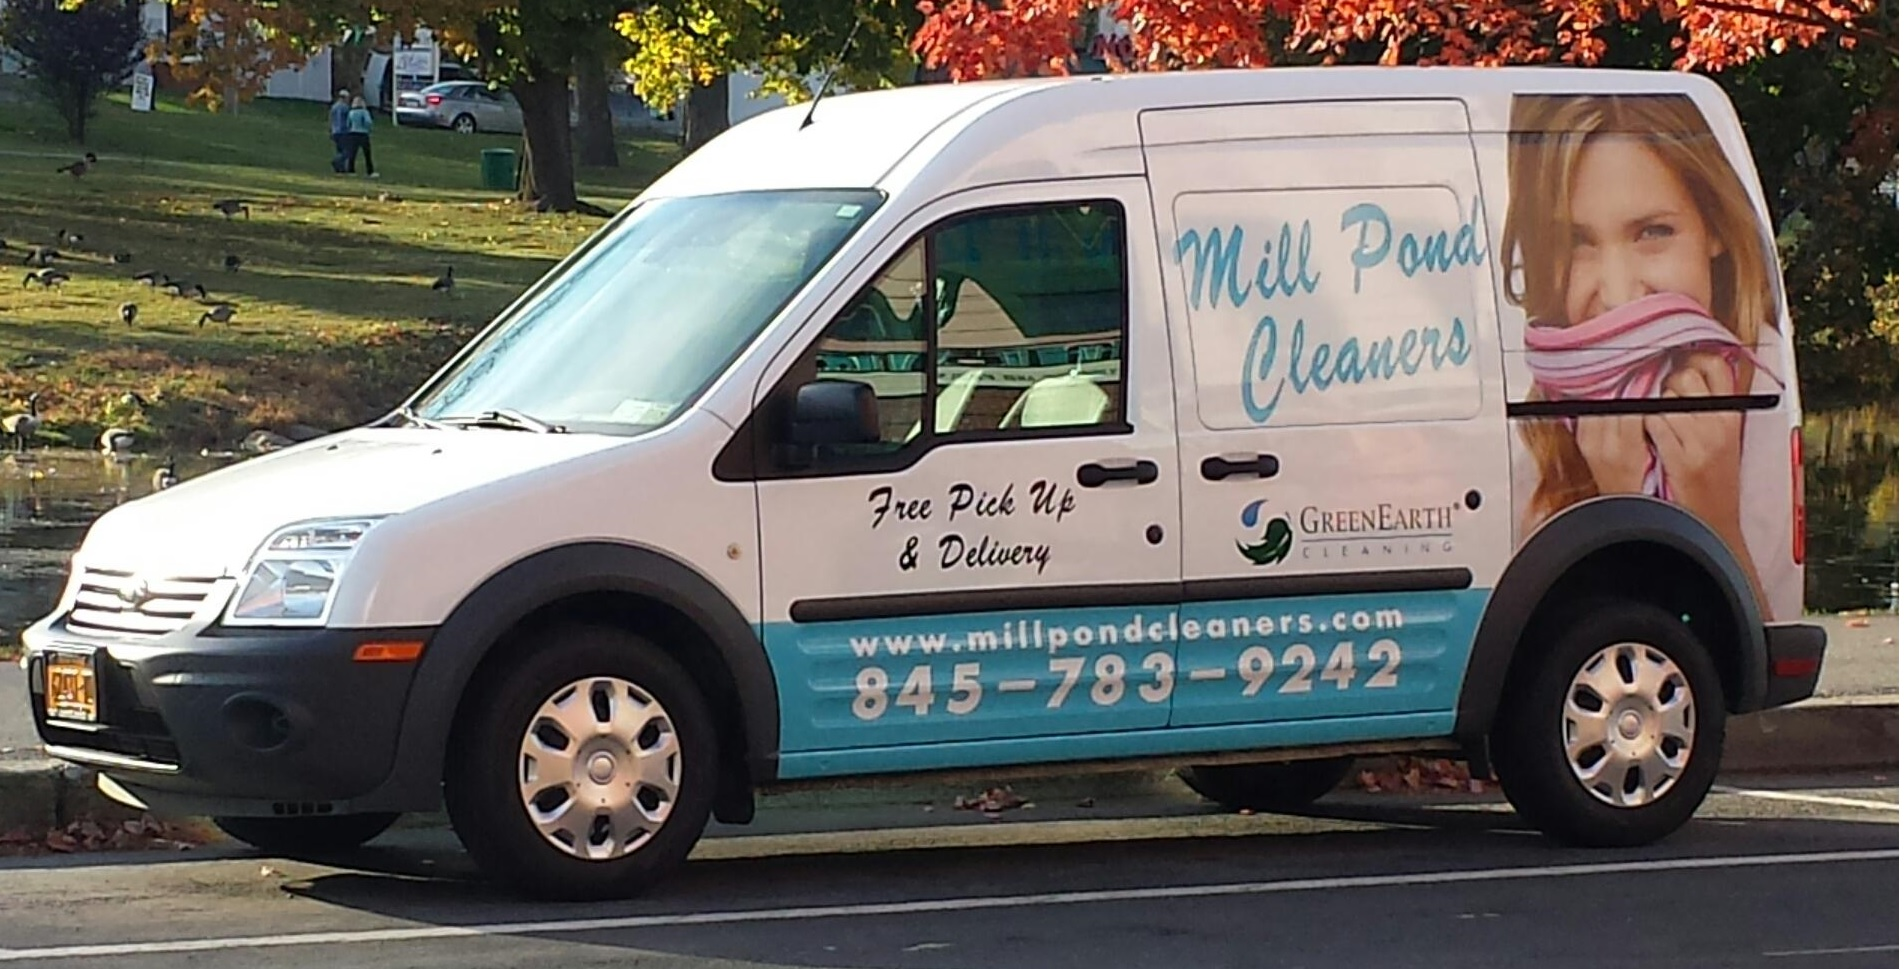 Millpond Cleaners will pick up and deliver!